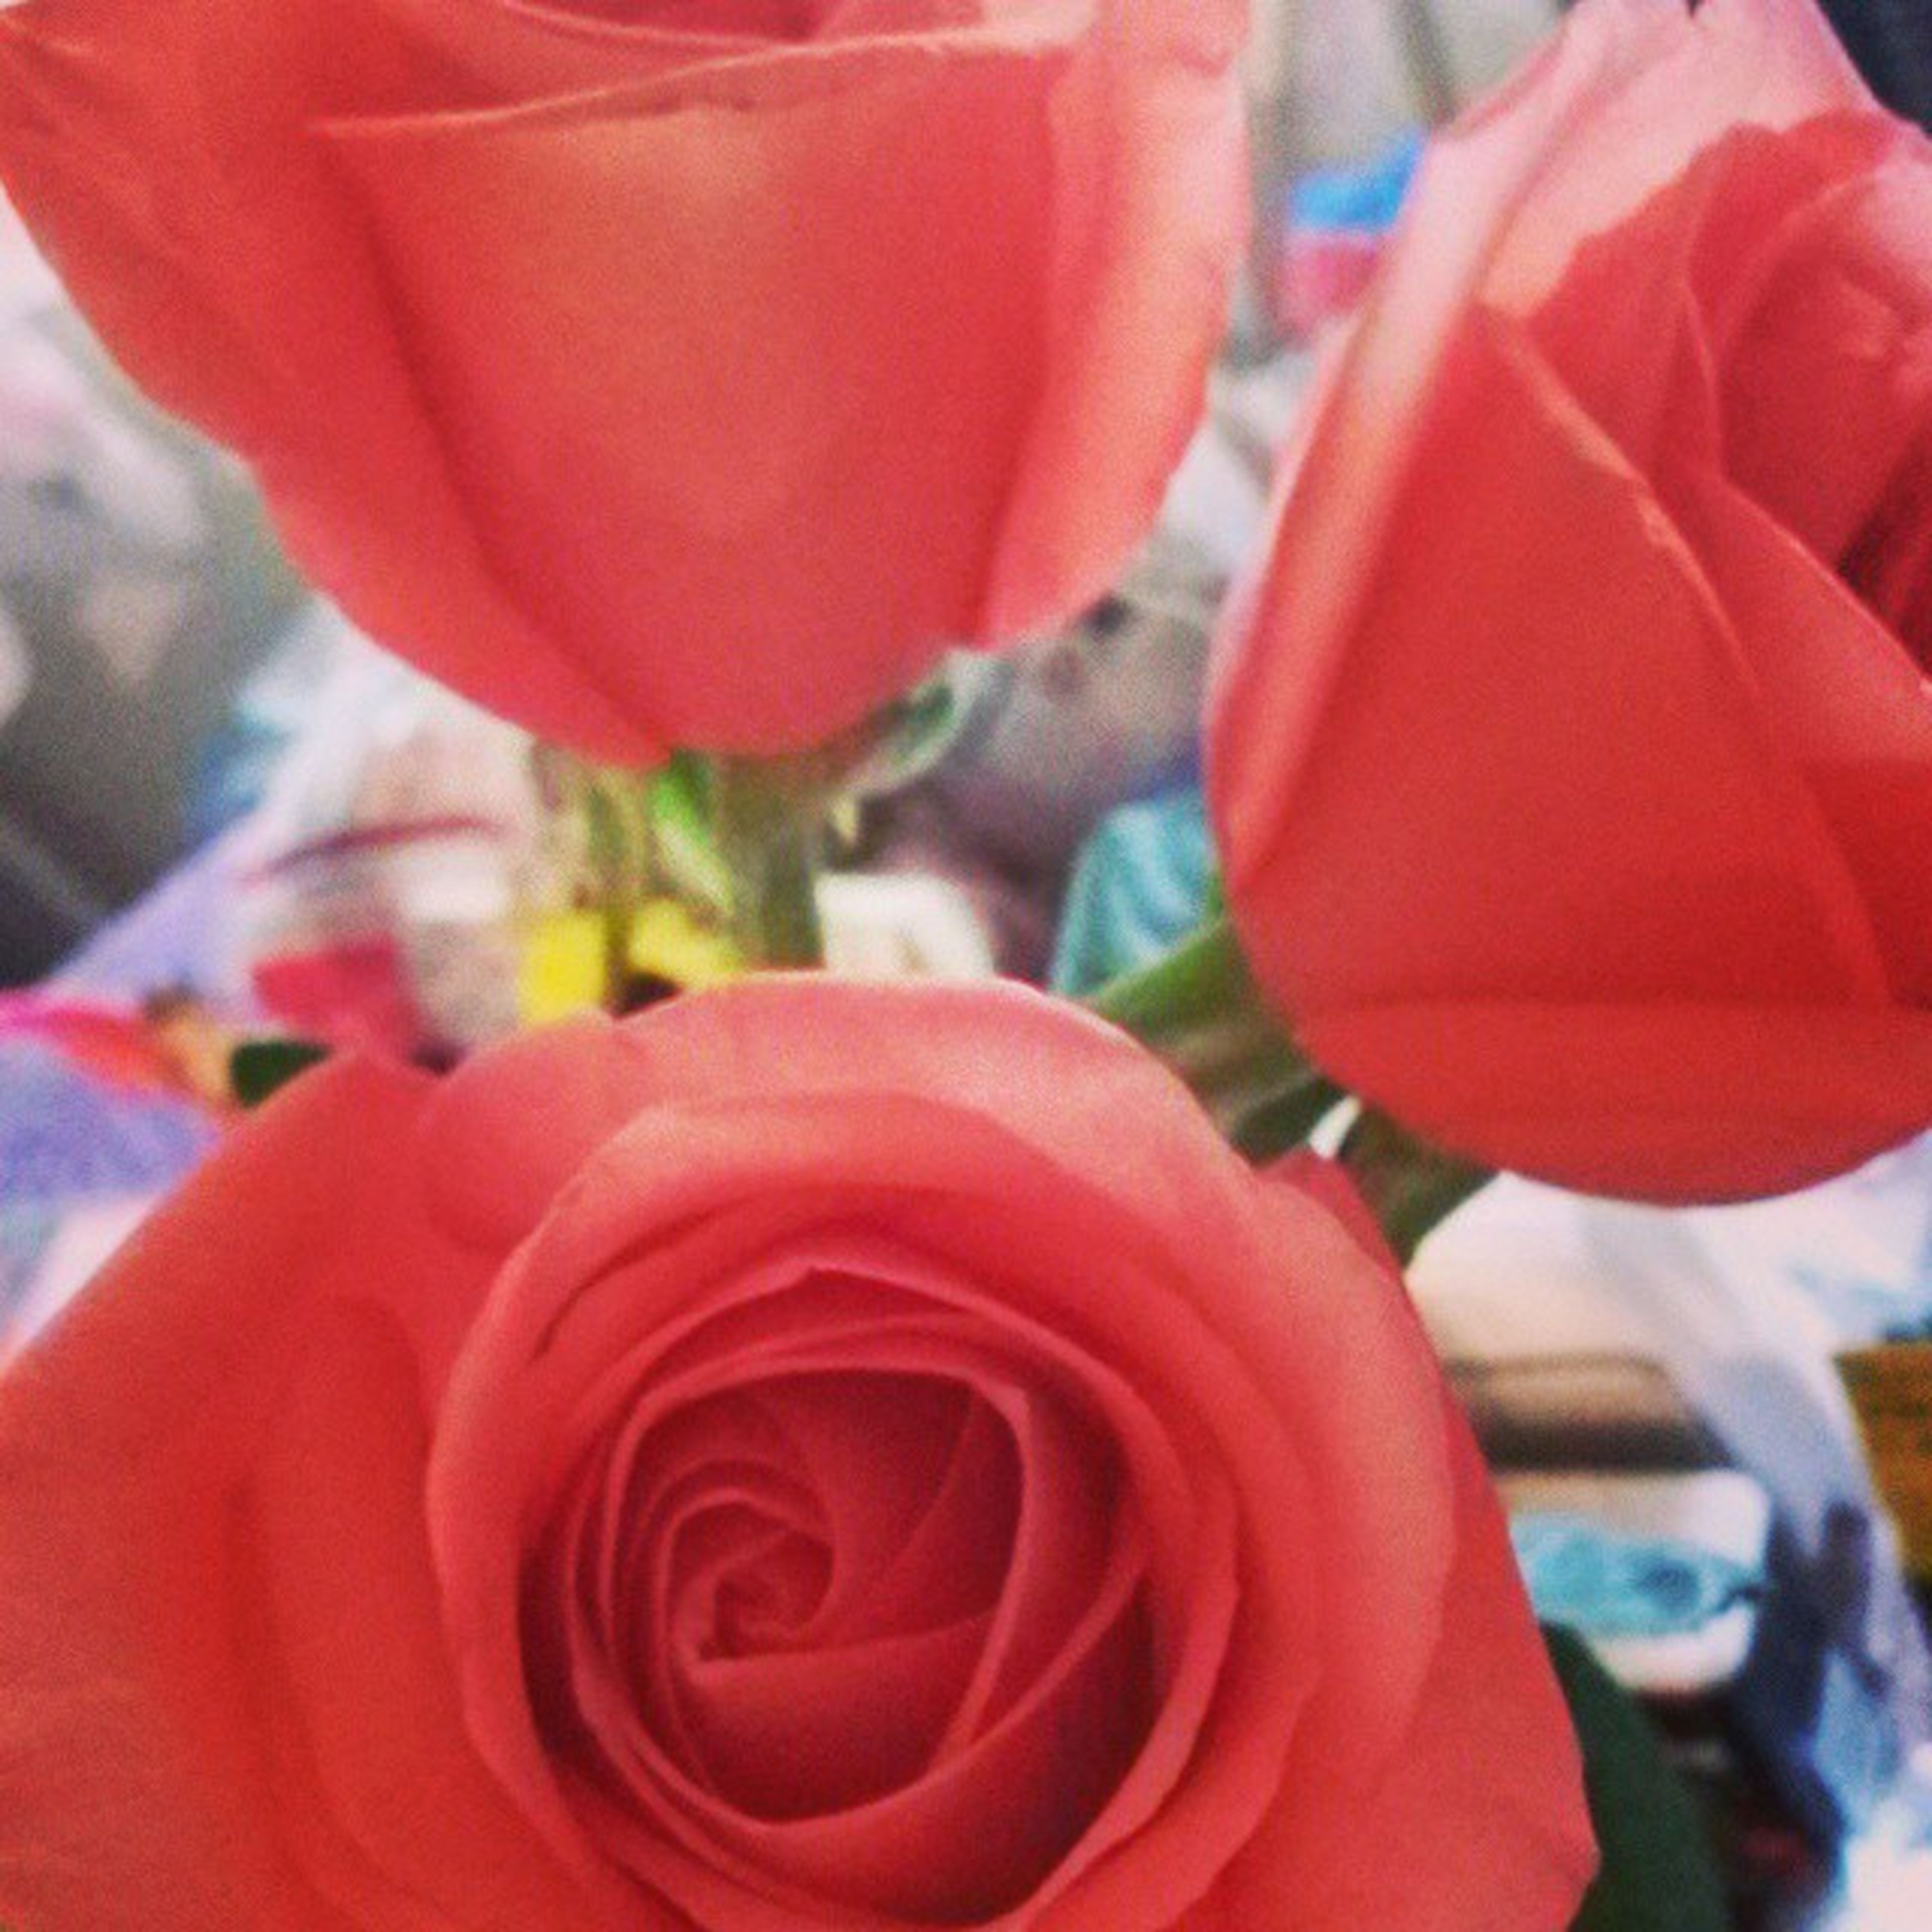 red, flower, focus on foreground, close-up, petal, freshness, rose - flower, flower head, fragility, selective focus, indoors, day, no people, nature, growth, incidental people, tulip, beauty in nature, plant